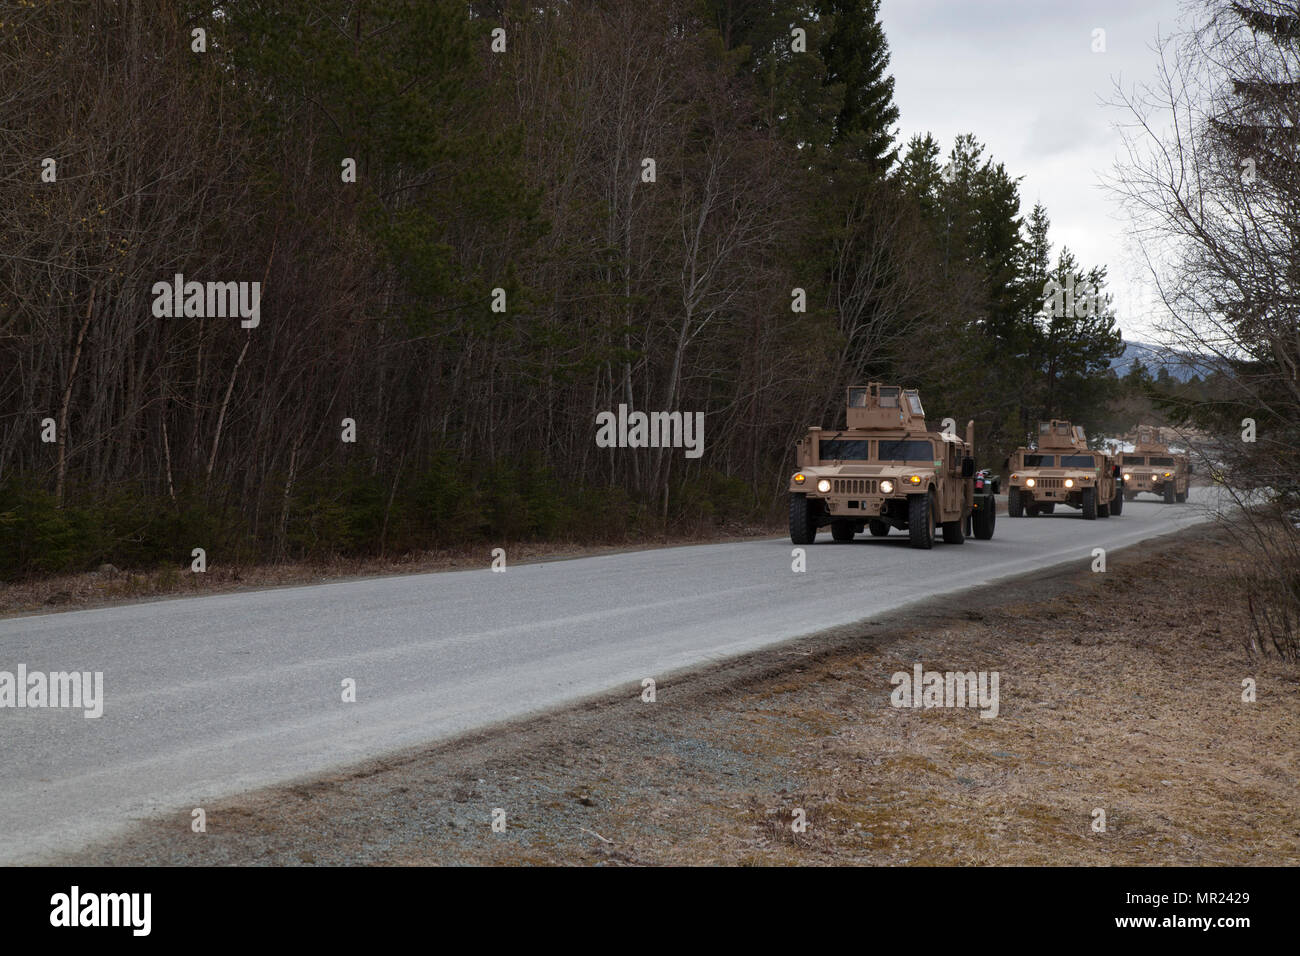 U.S. Marines with 2nd Transportation Support Battalion, Combat Logistics Regiment 2, 2nd Marine Logistics Group move a convoy of Humvees as part of Strategic Mobility Exercise 17 (STRATMOBEX) in Frigaard, Norway, May 3, 2017. STRATMOBEX was conducted to analyze the responsiveness of the force for future contingency operations involving the Marine Corps Prepositioning Program in Norway (MCPP-N).  MCPP-N creates strategic options for the defense of NATO allies and partners by providing regional support. (U.S. Marine Corps photo by Cpl. Emily Dorumsgaard) Stock Photo